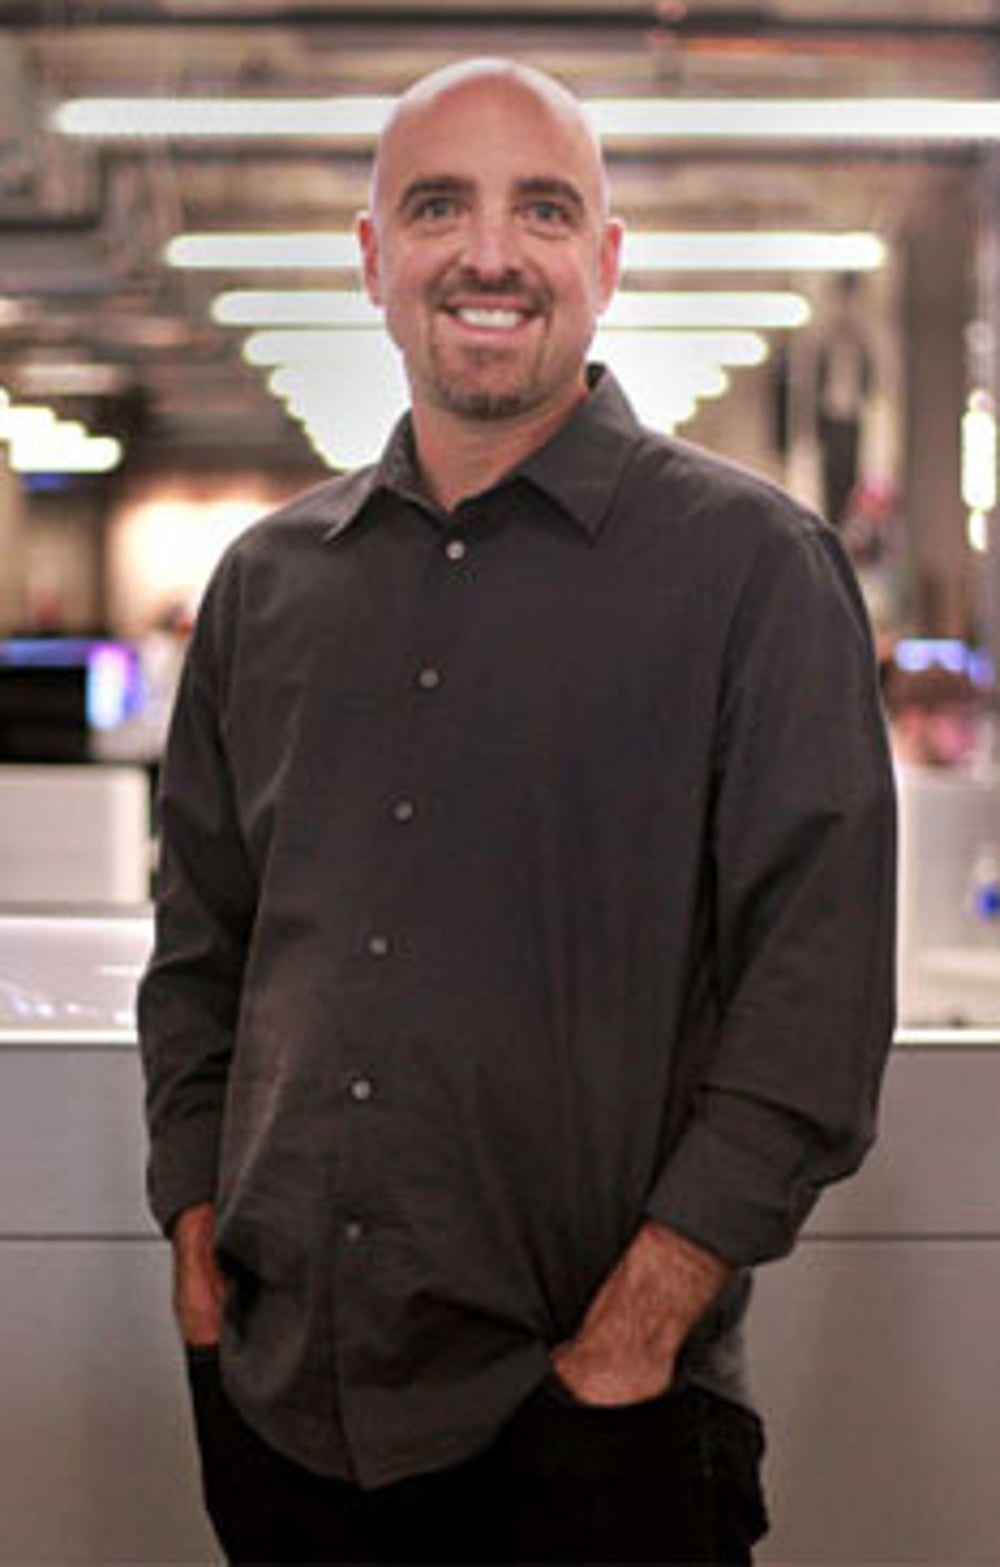 Brad Keywell, co-founder of Groupon and Lightbank